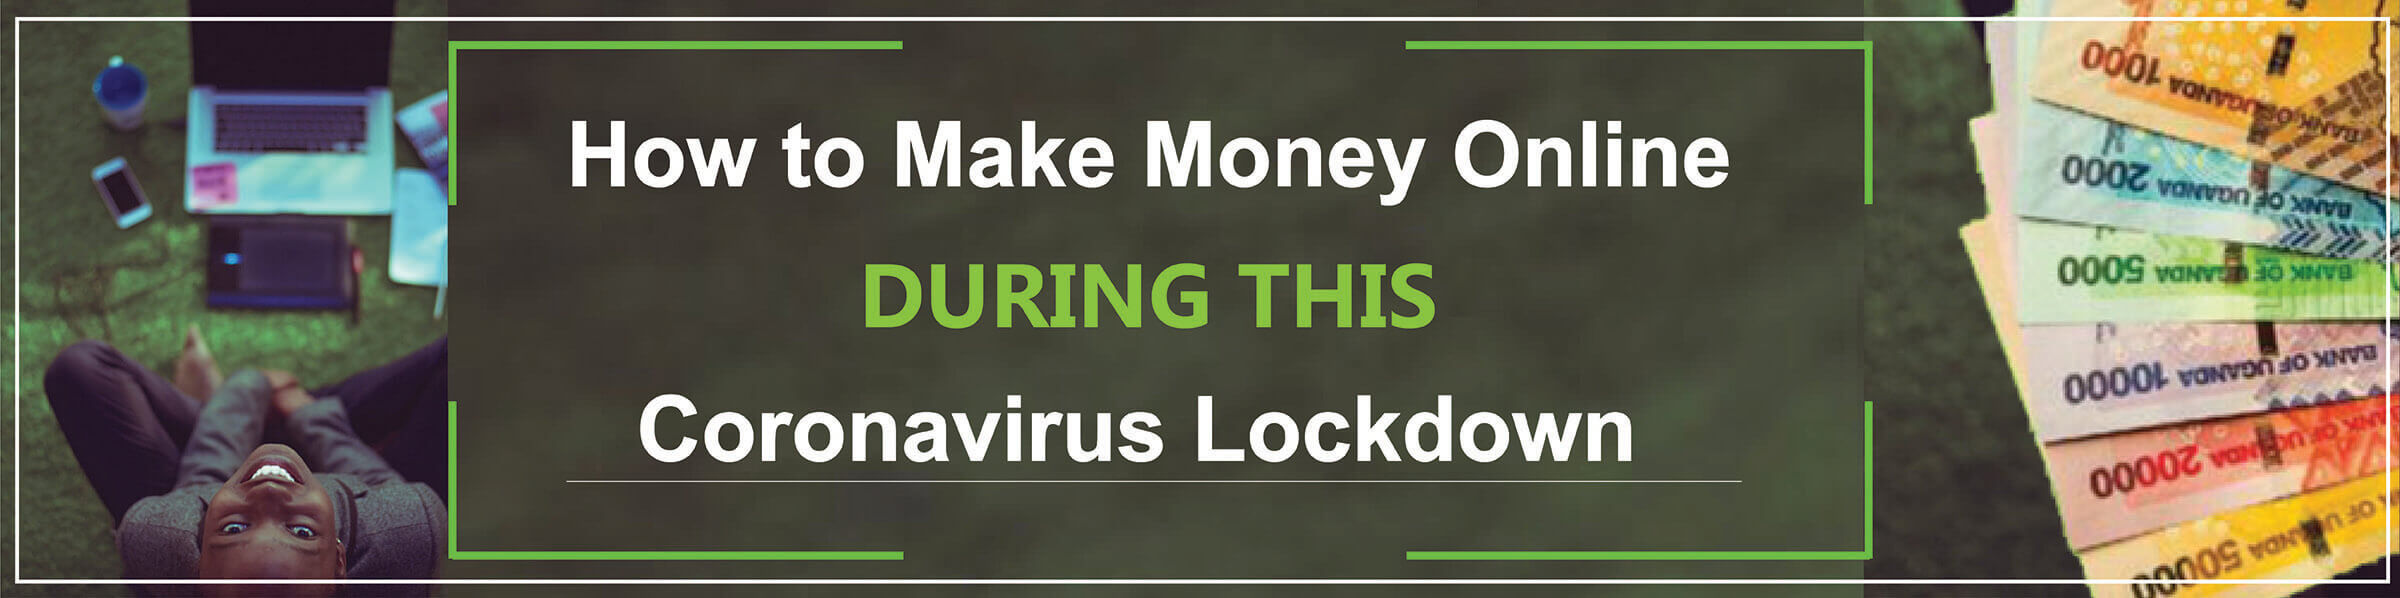 Make Money Online During This Lockdown